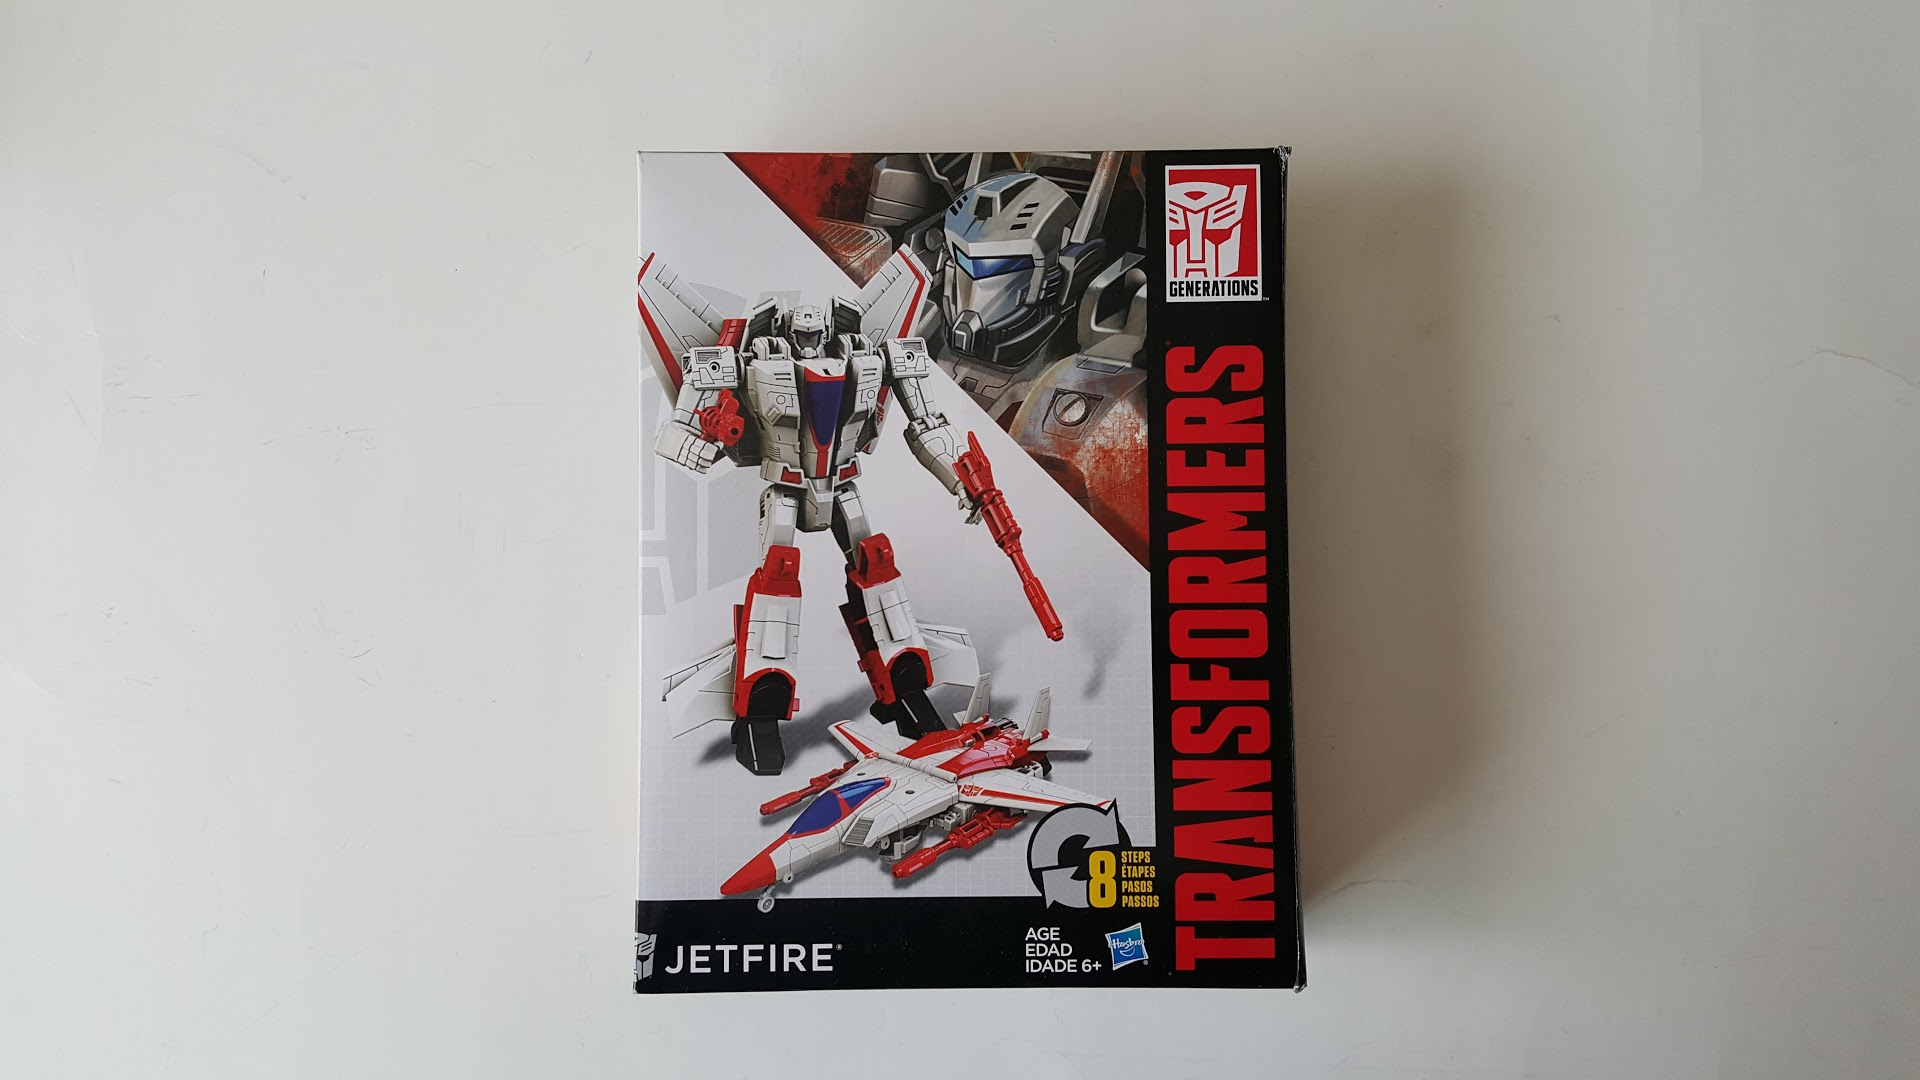 Hasbro Transformers Jetfire Cyber Battalion Walgreens Model Figures Toys Gift